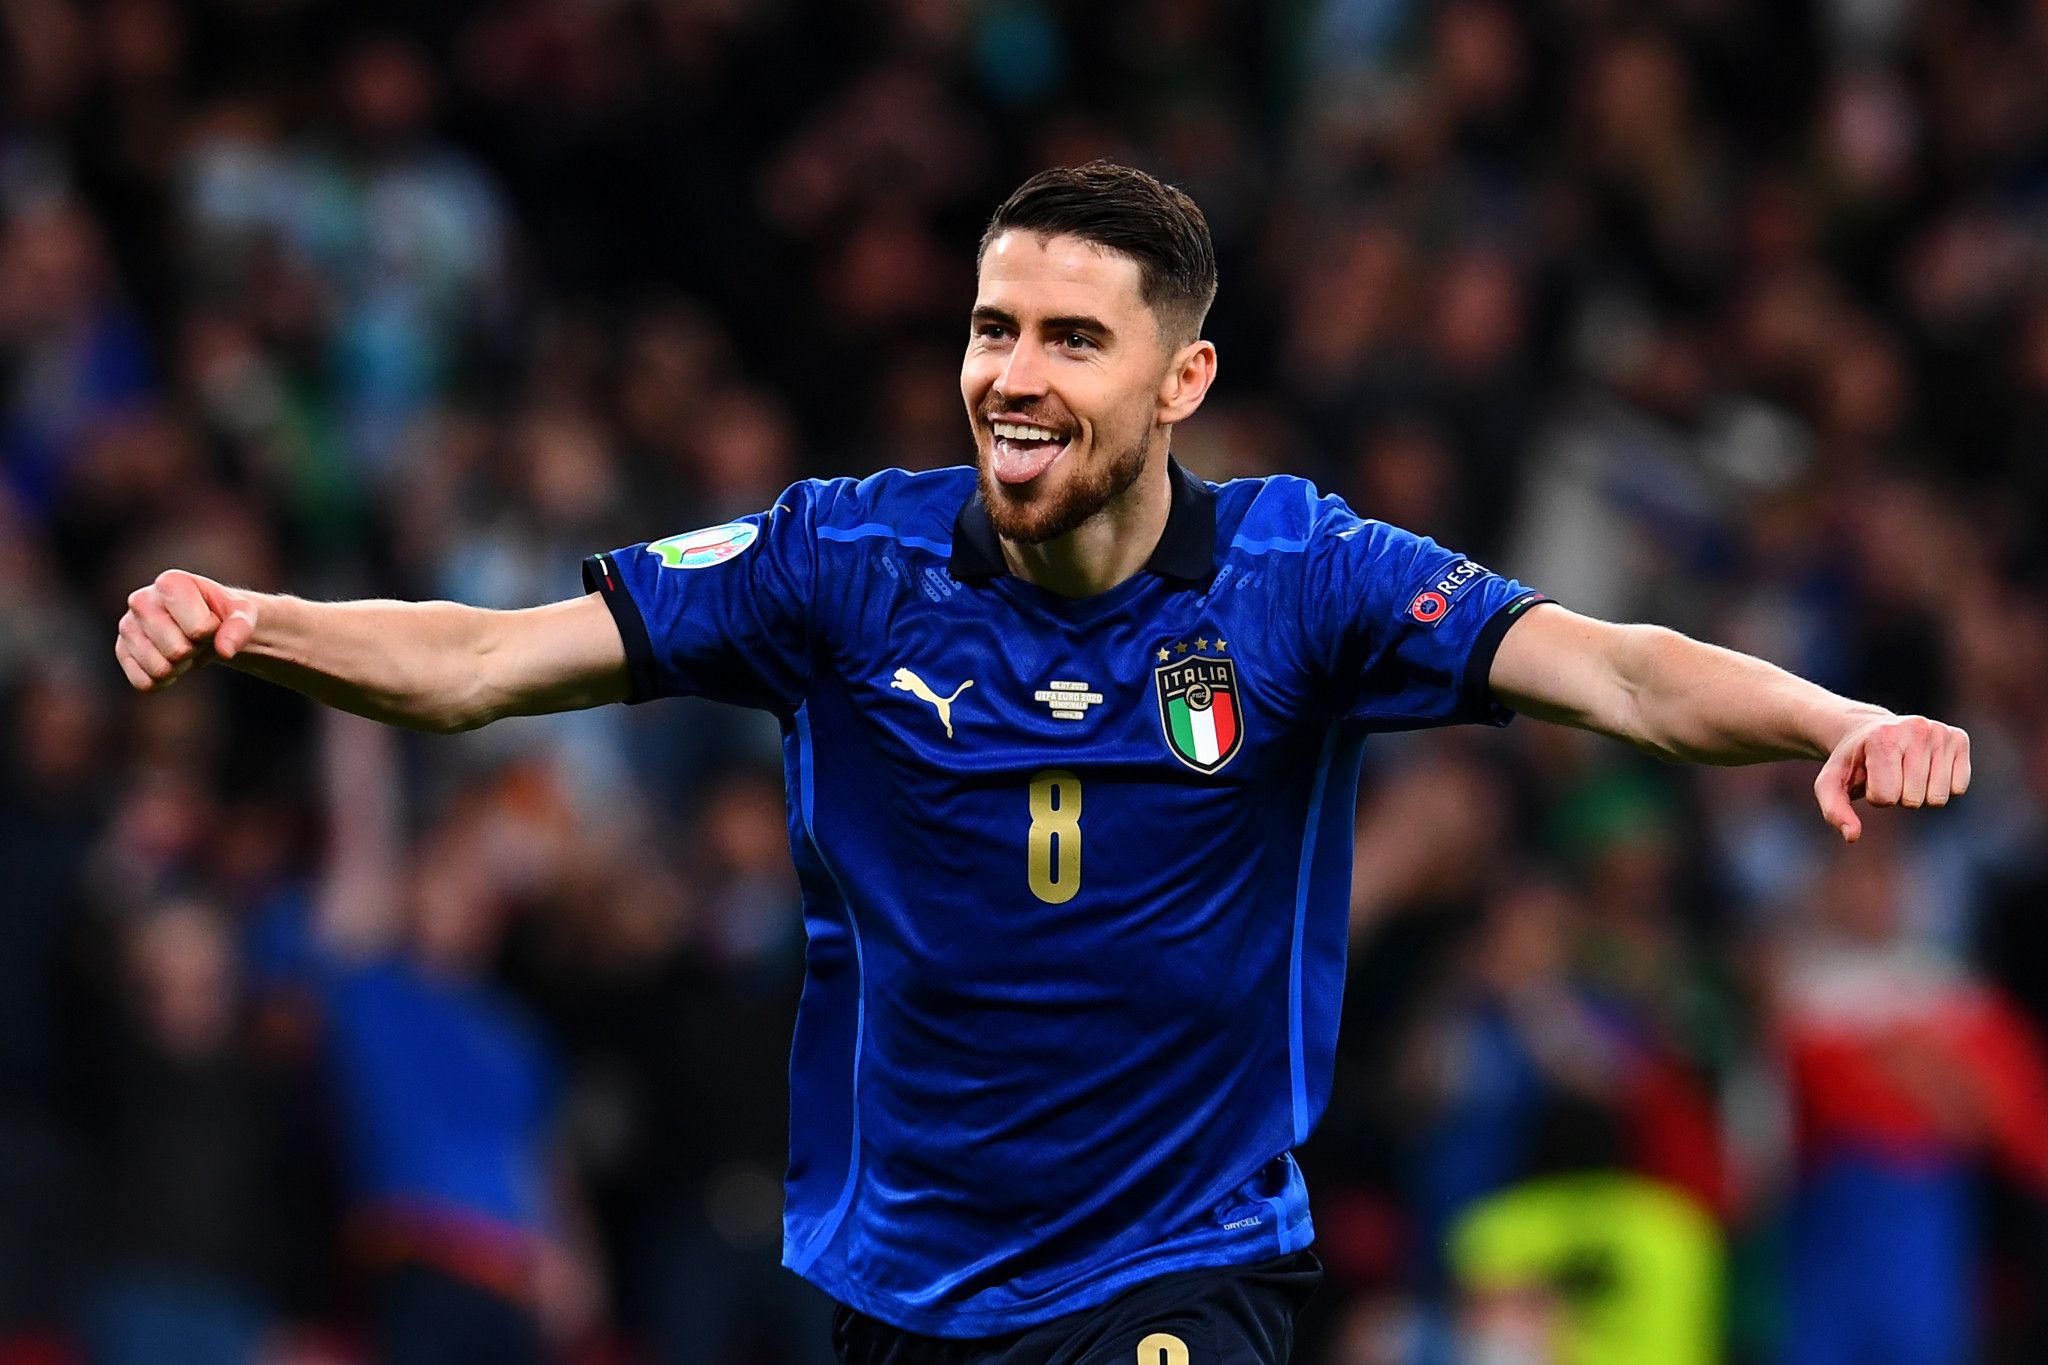 Italy reach Euro 2020 final after penalty shootout success against Spain